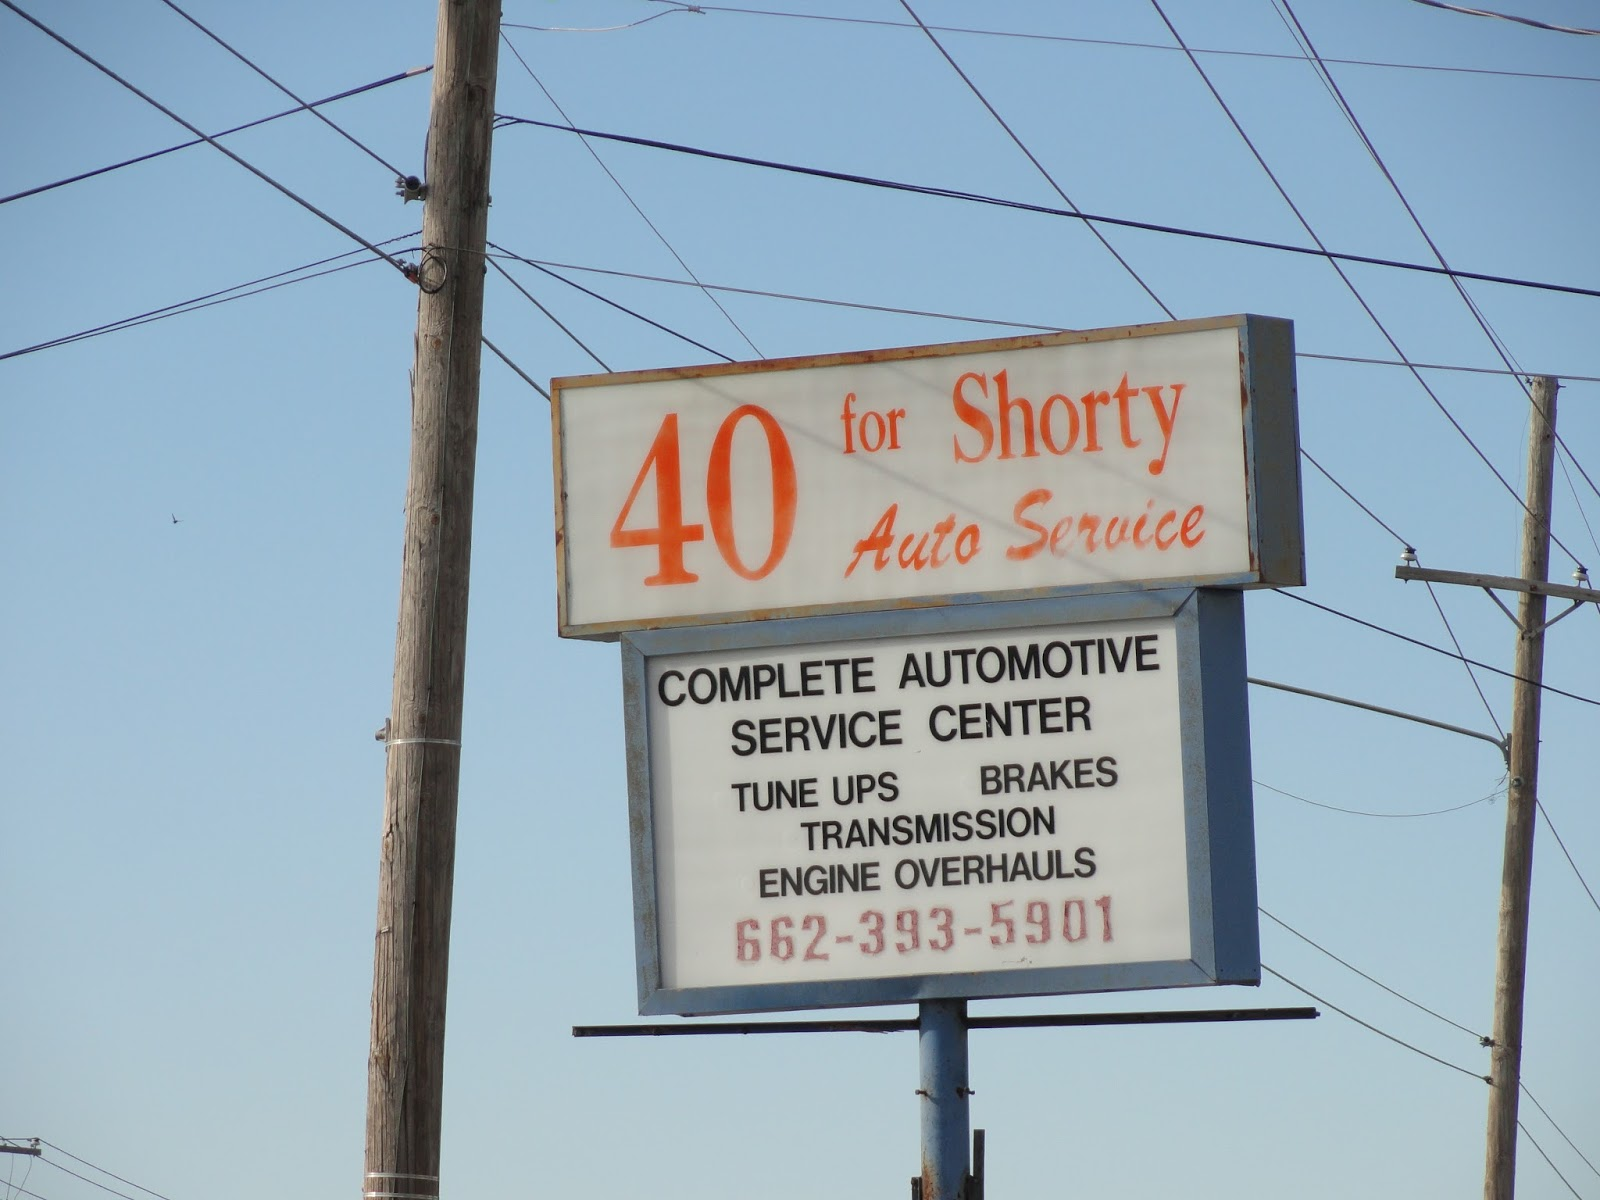 Crme de memph january 2017 40 for shorty auto service is on us 51 just south of the state line in southaven malvernweather Images